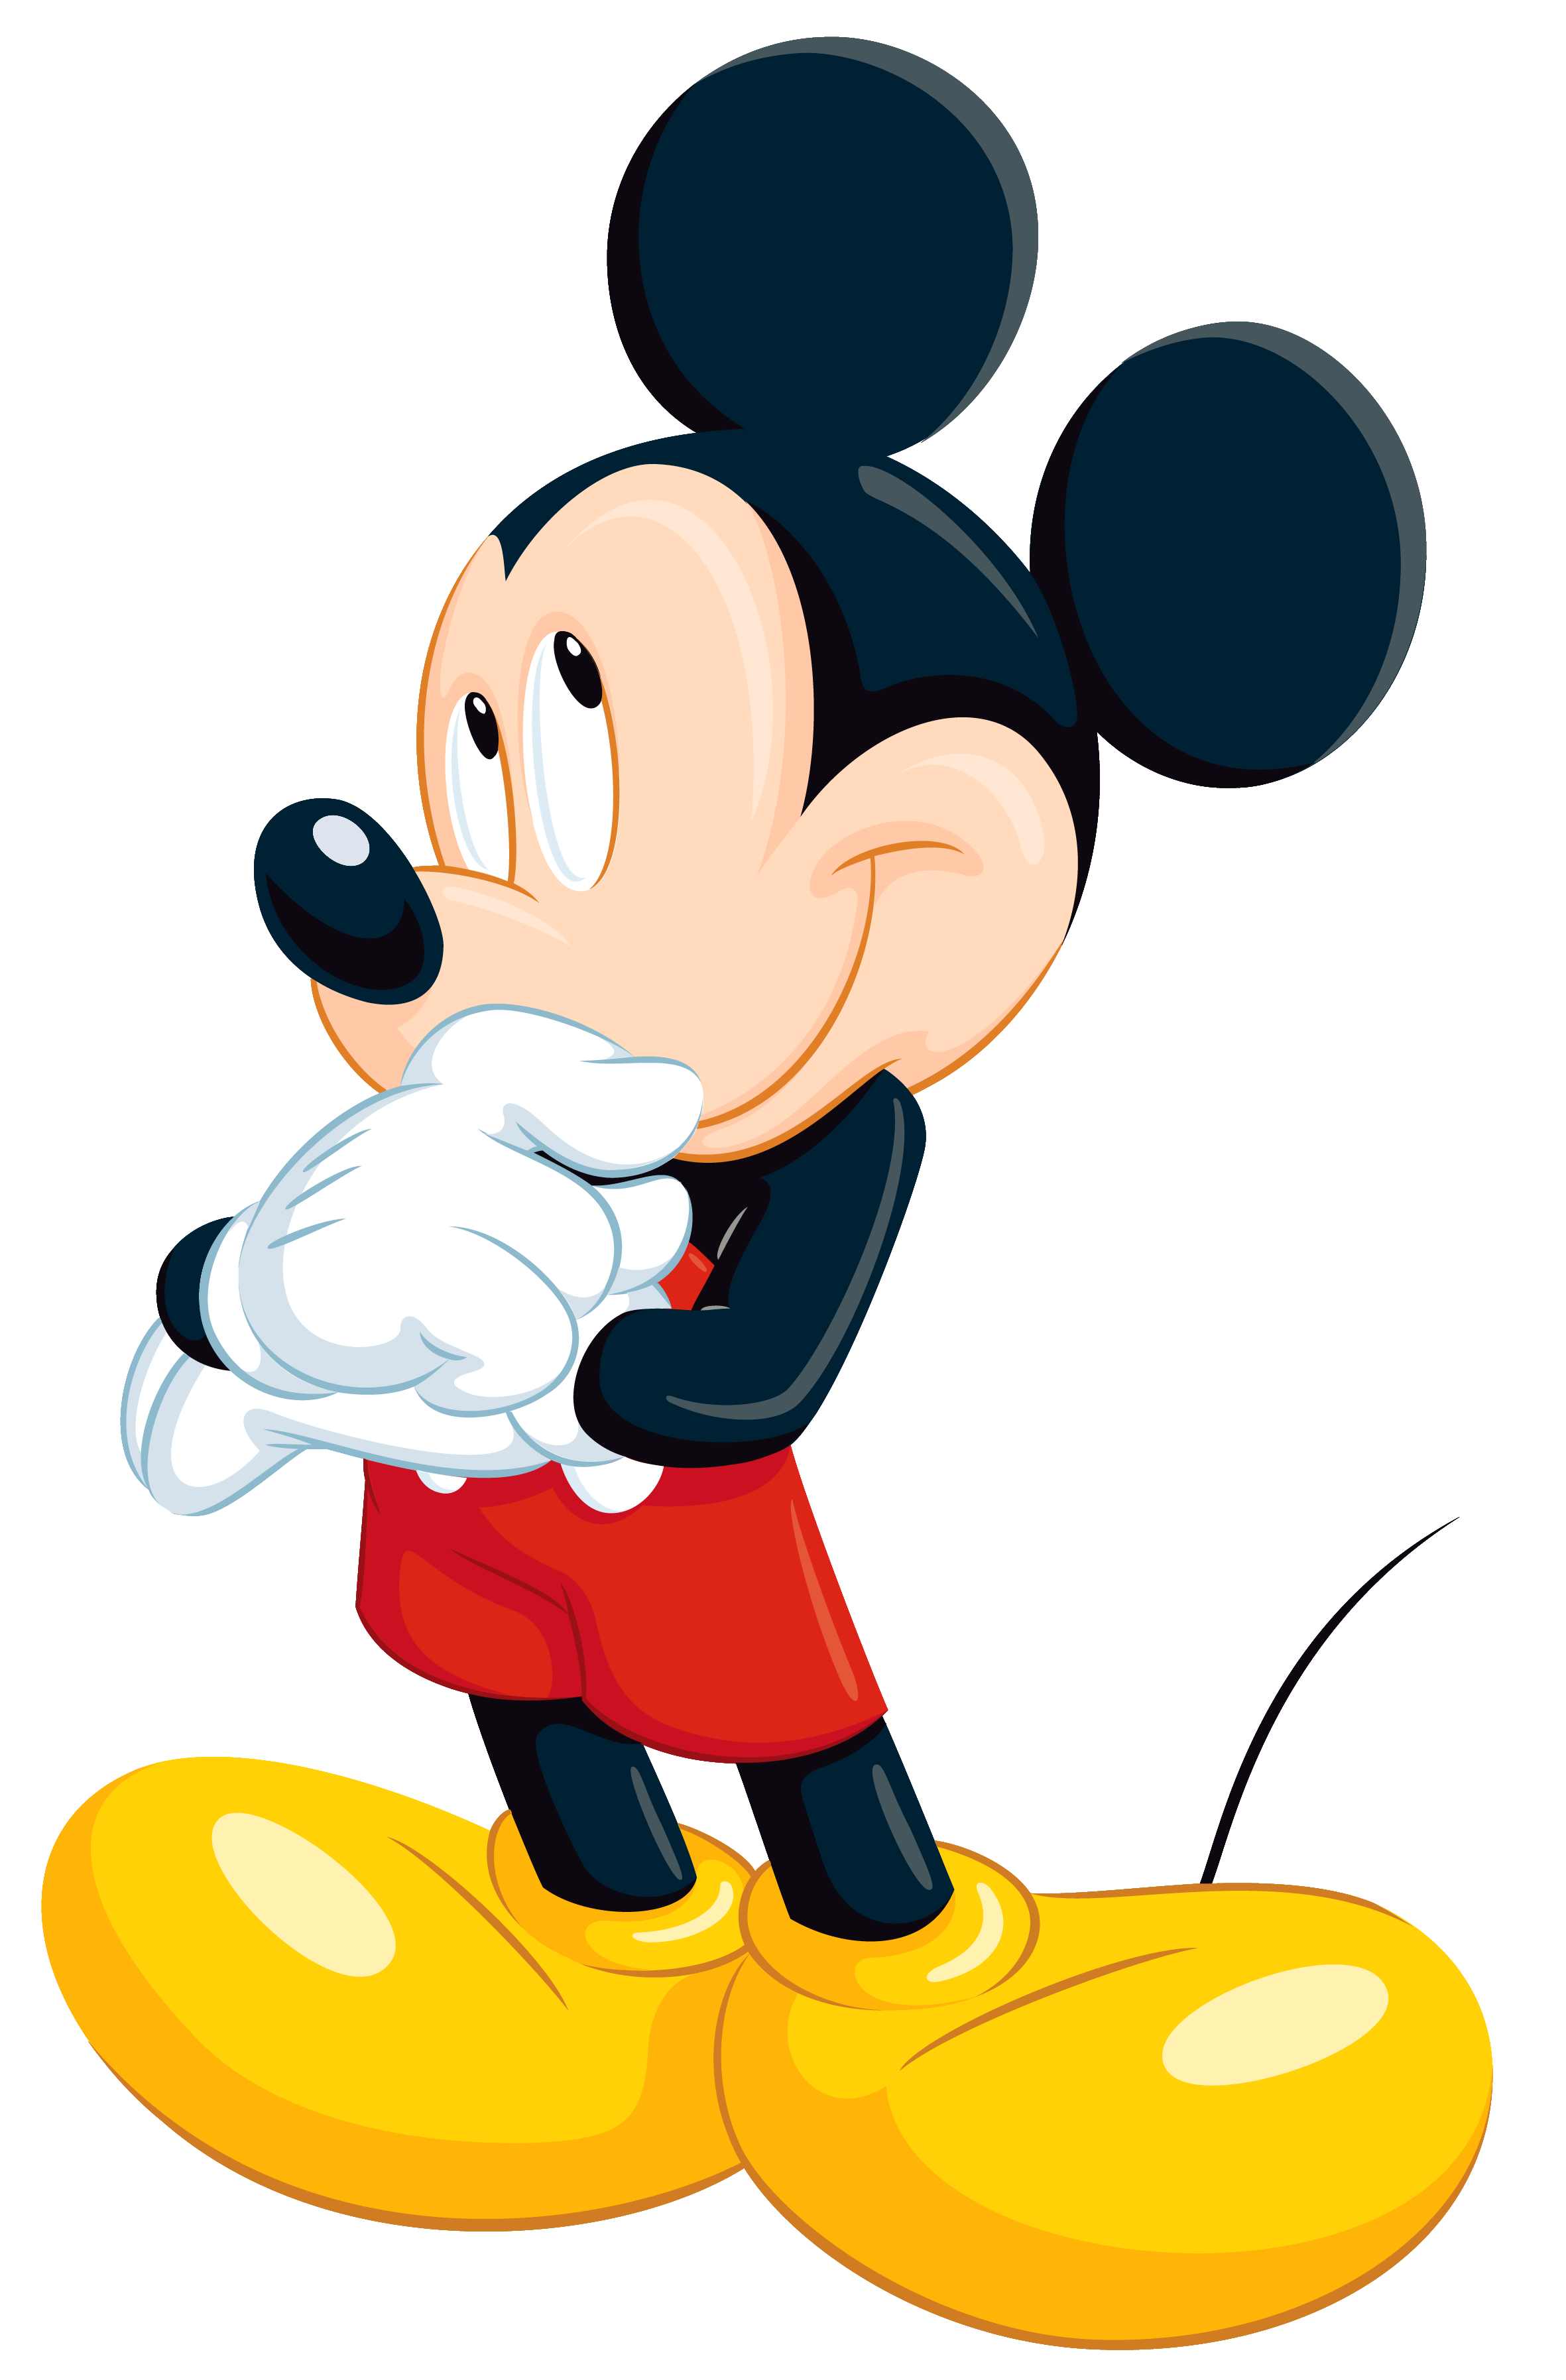 skeleton clipart mickey mouse